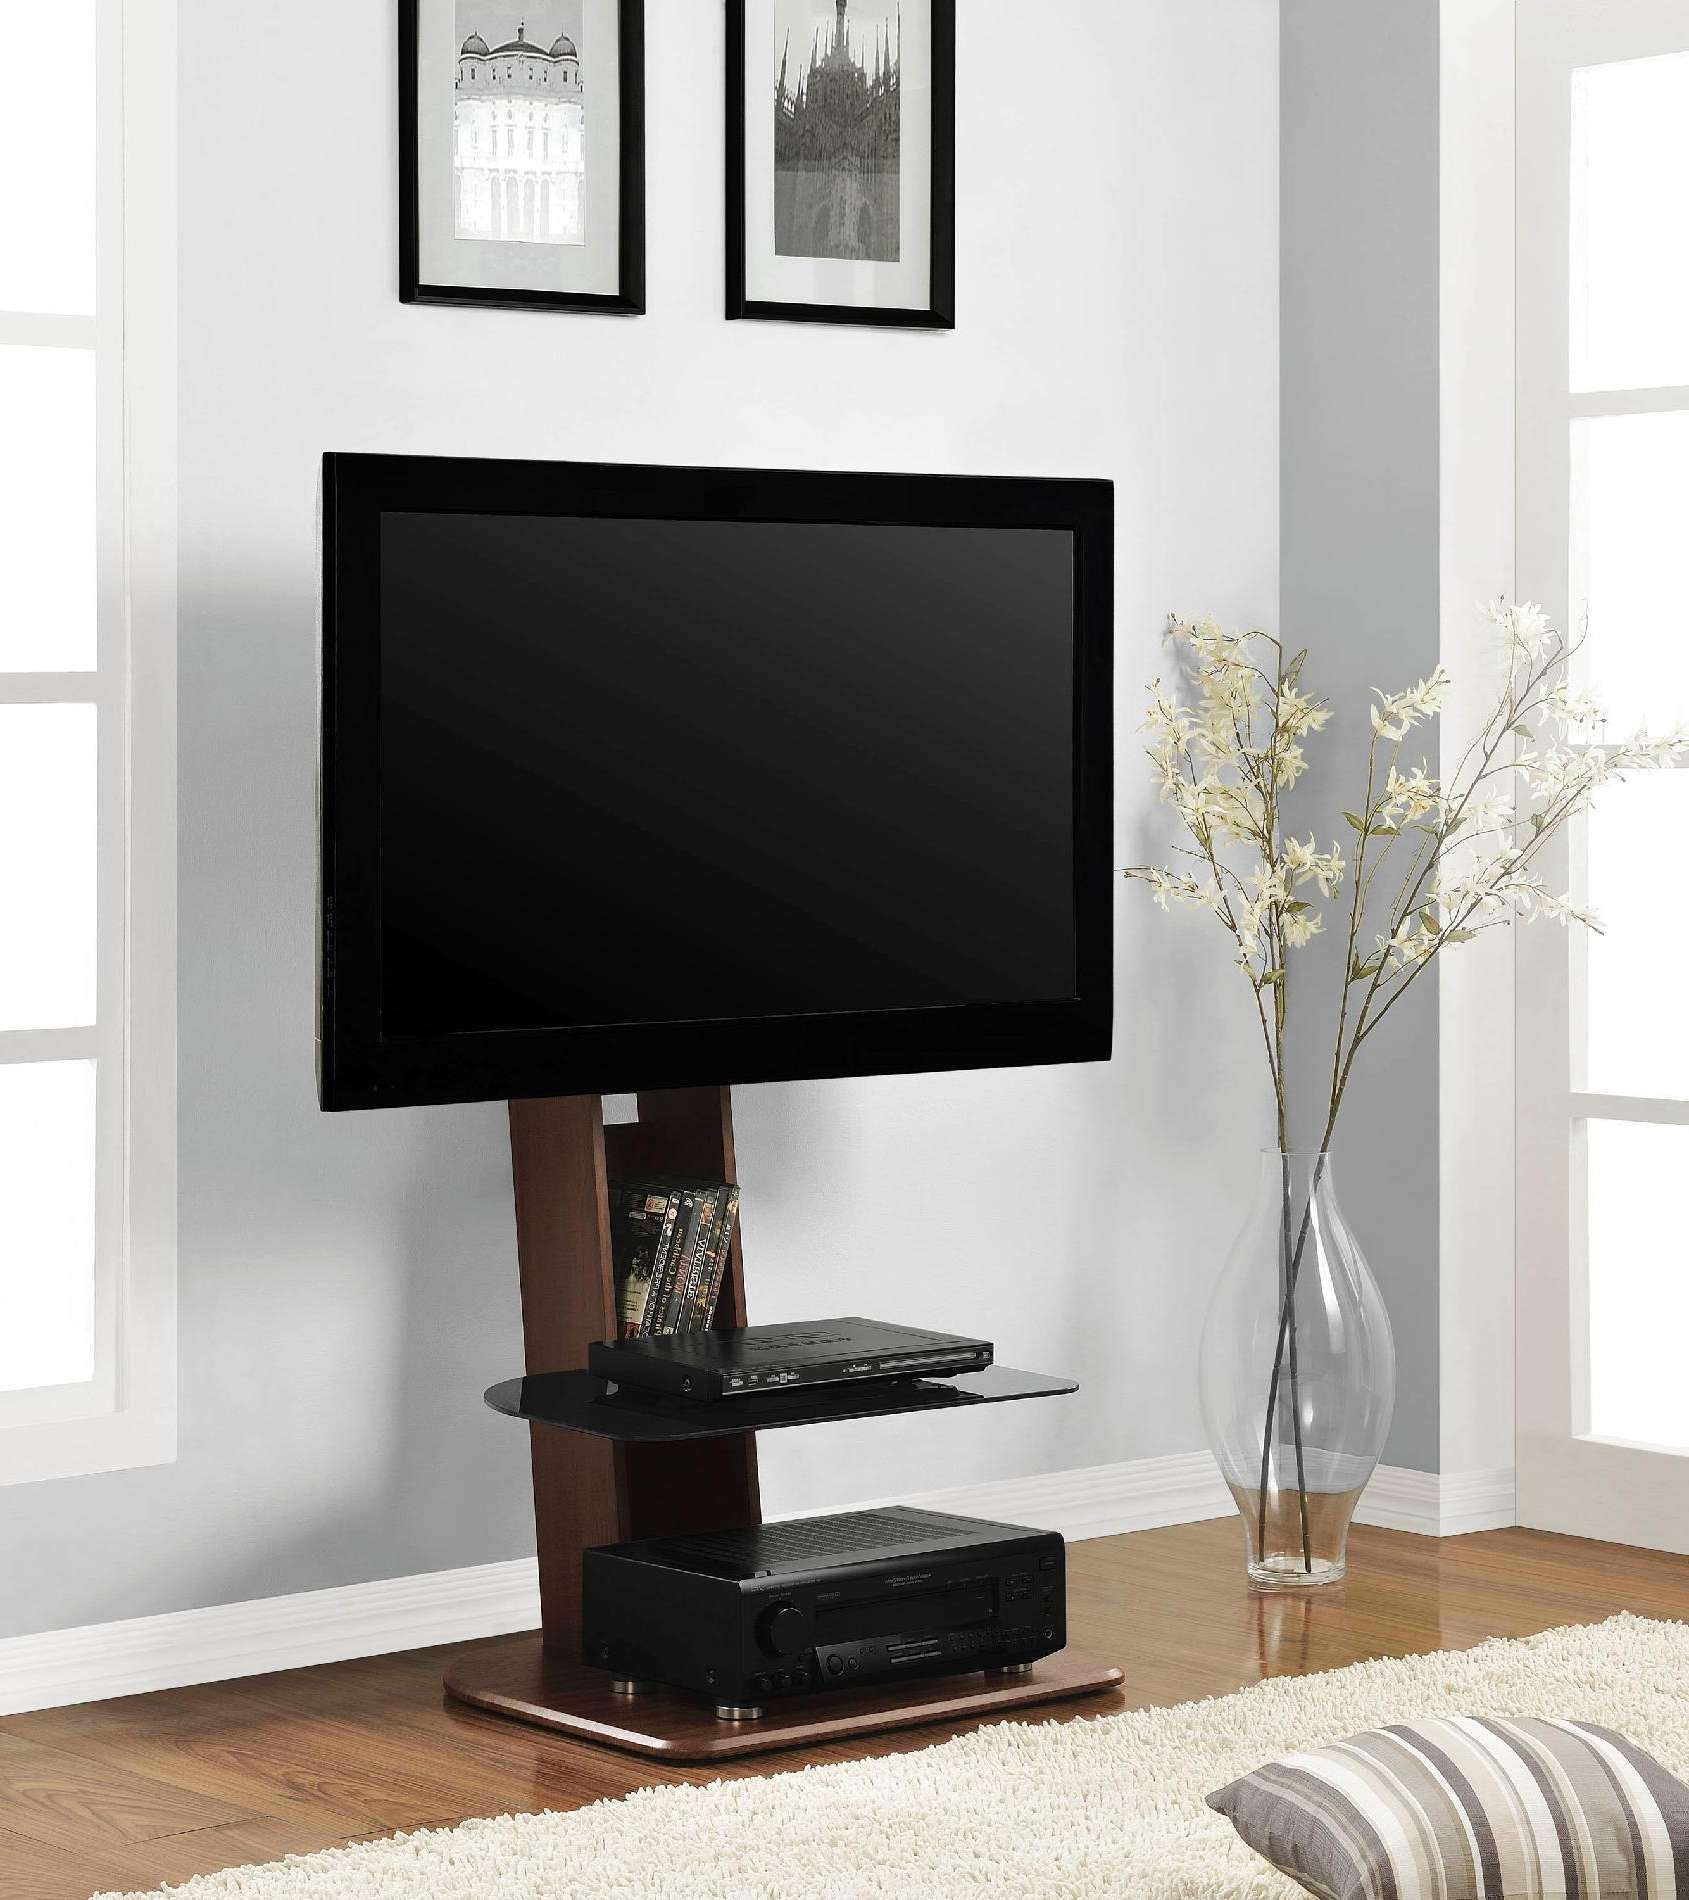 Startling Mount Discount Tv Stands Wall Brown Carpet Television In Wood Tv Stands With Swivel Mount (View 5 of 15)